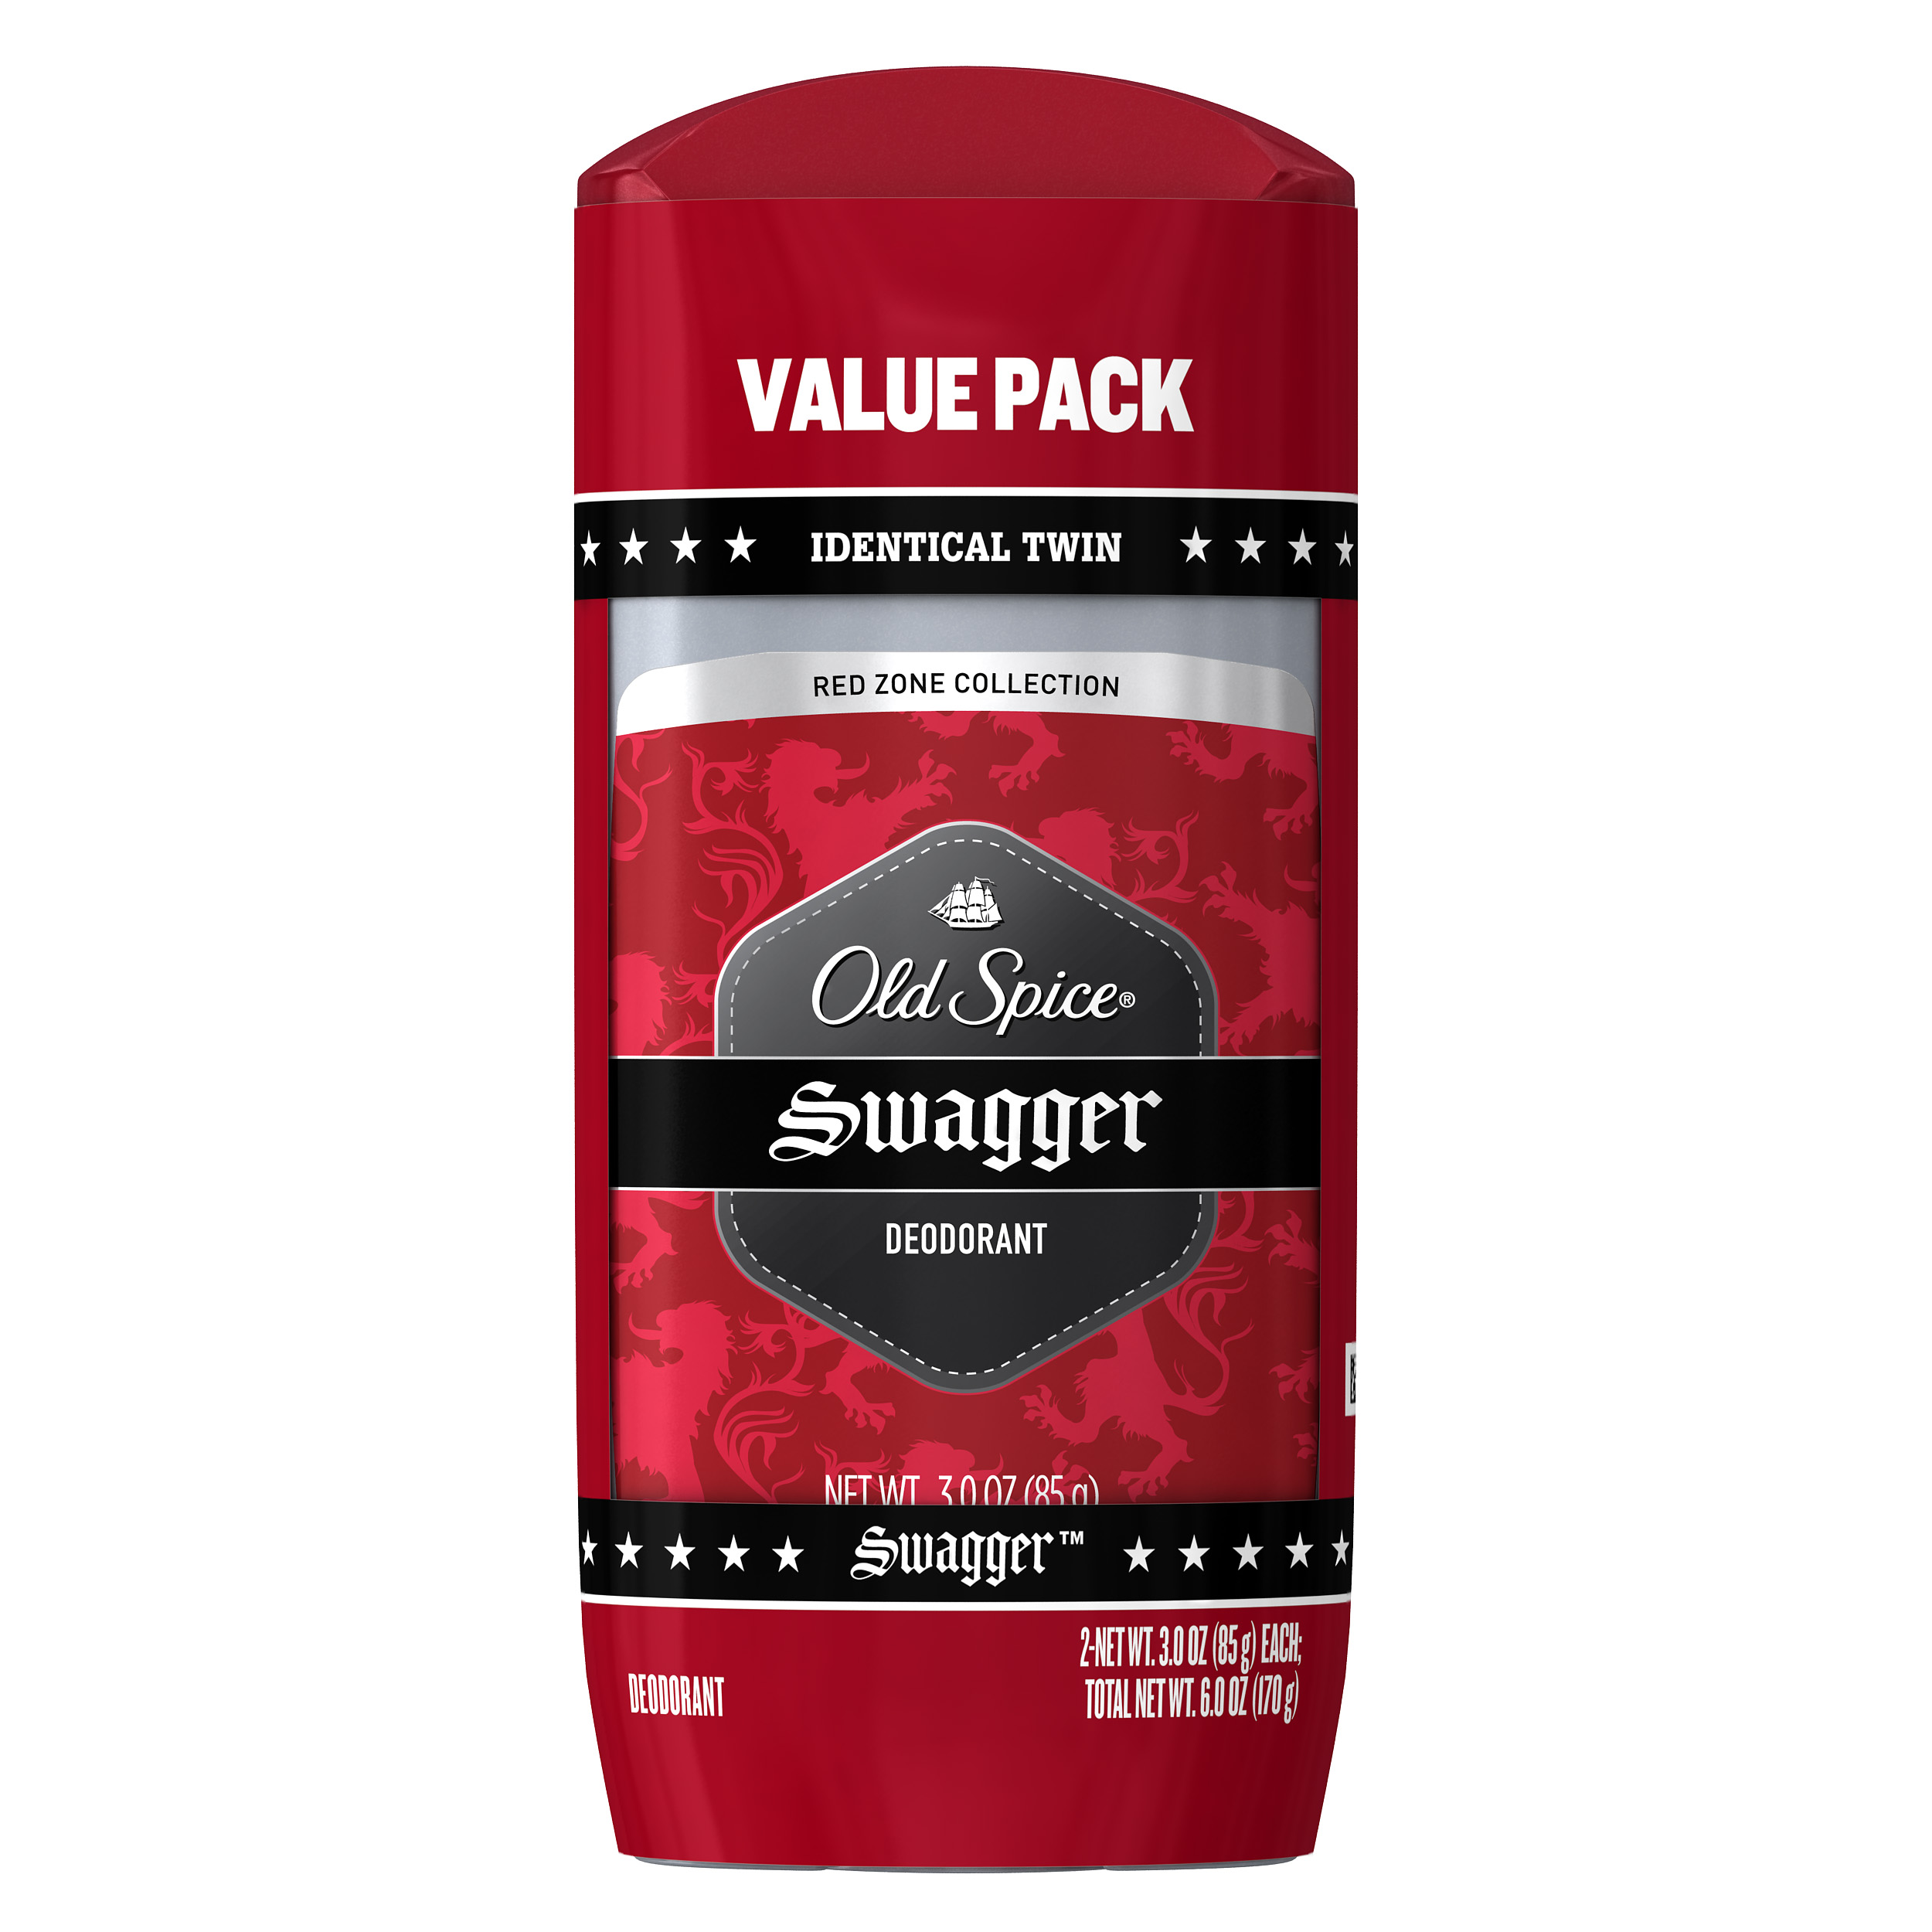 Old Spice Red Zone Swagger Deodorant for Men 3 oz Twin